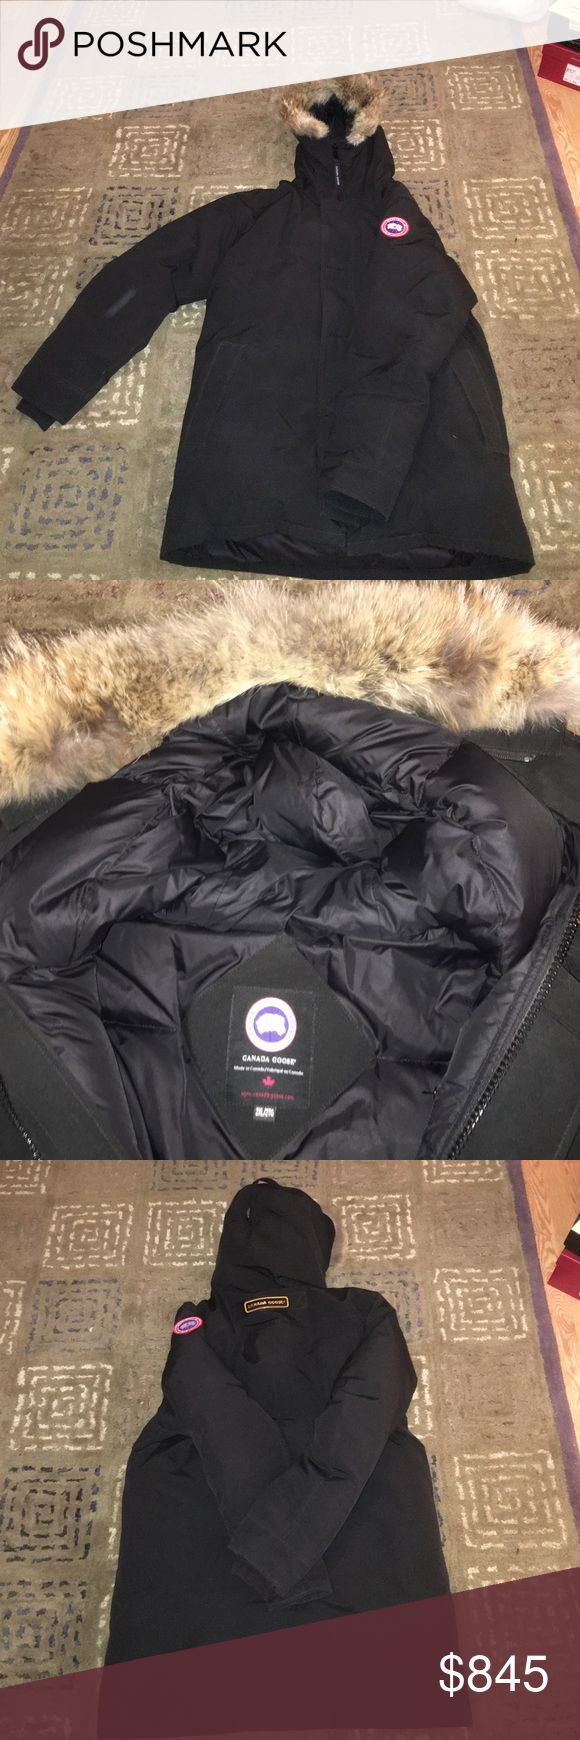 Canada Goose parka with Coyote fur hood 100 % authentic mens parka, model type: 00015172, this parka is in Amazing condition, no stains, no rips, no damages. Worn 1 time. Canada Goose Jackets & Coats Puffers